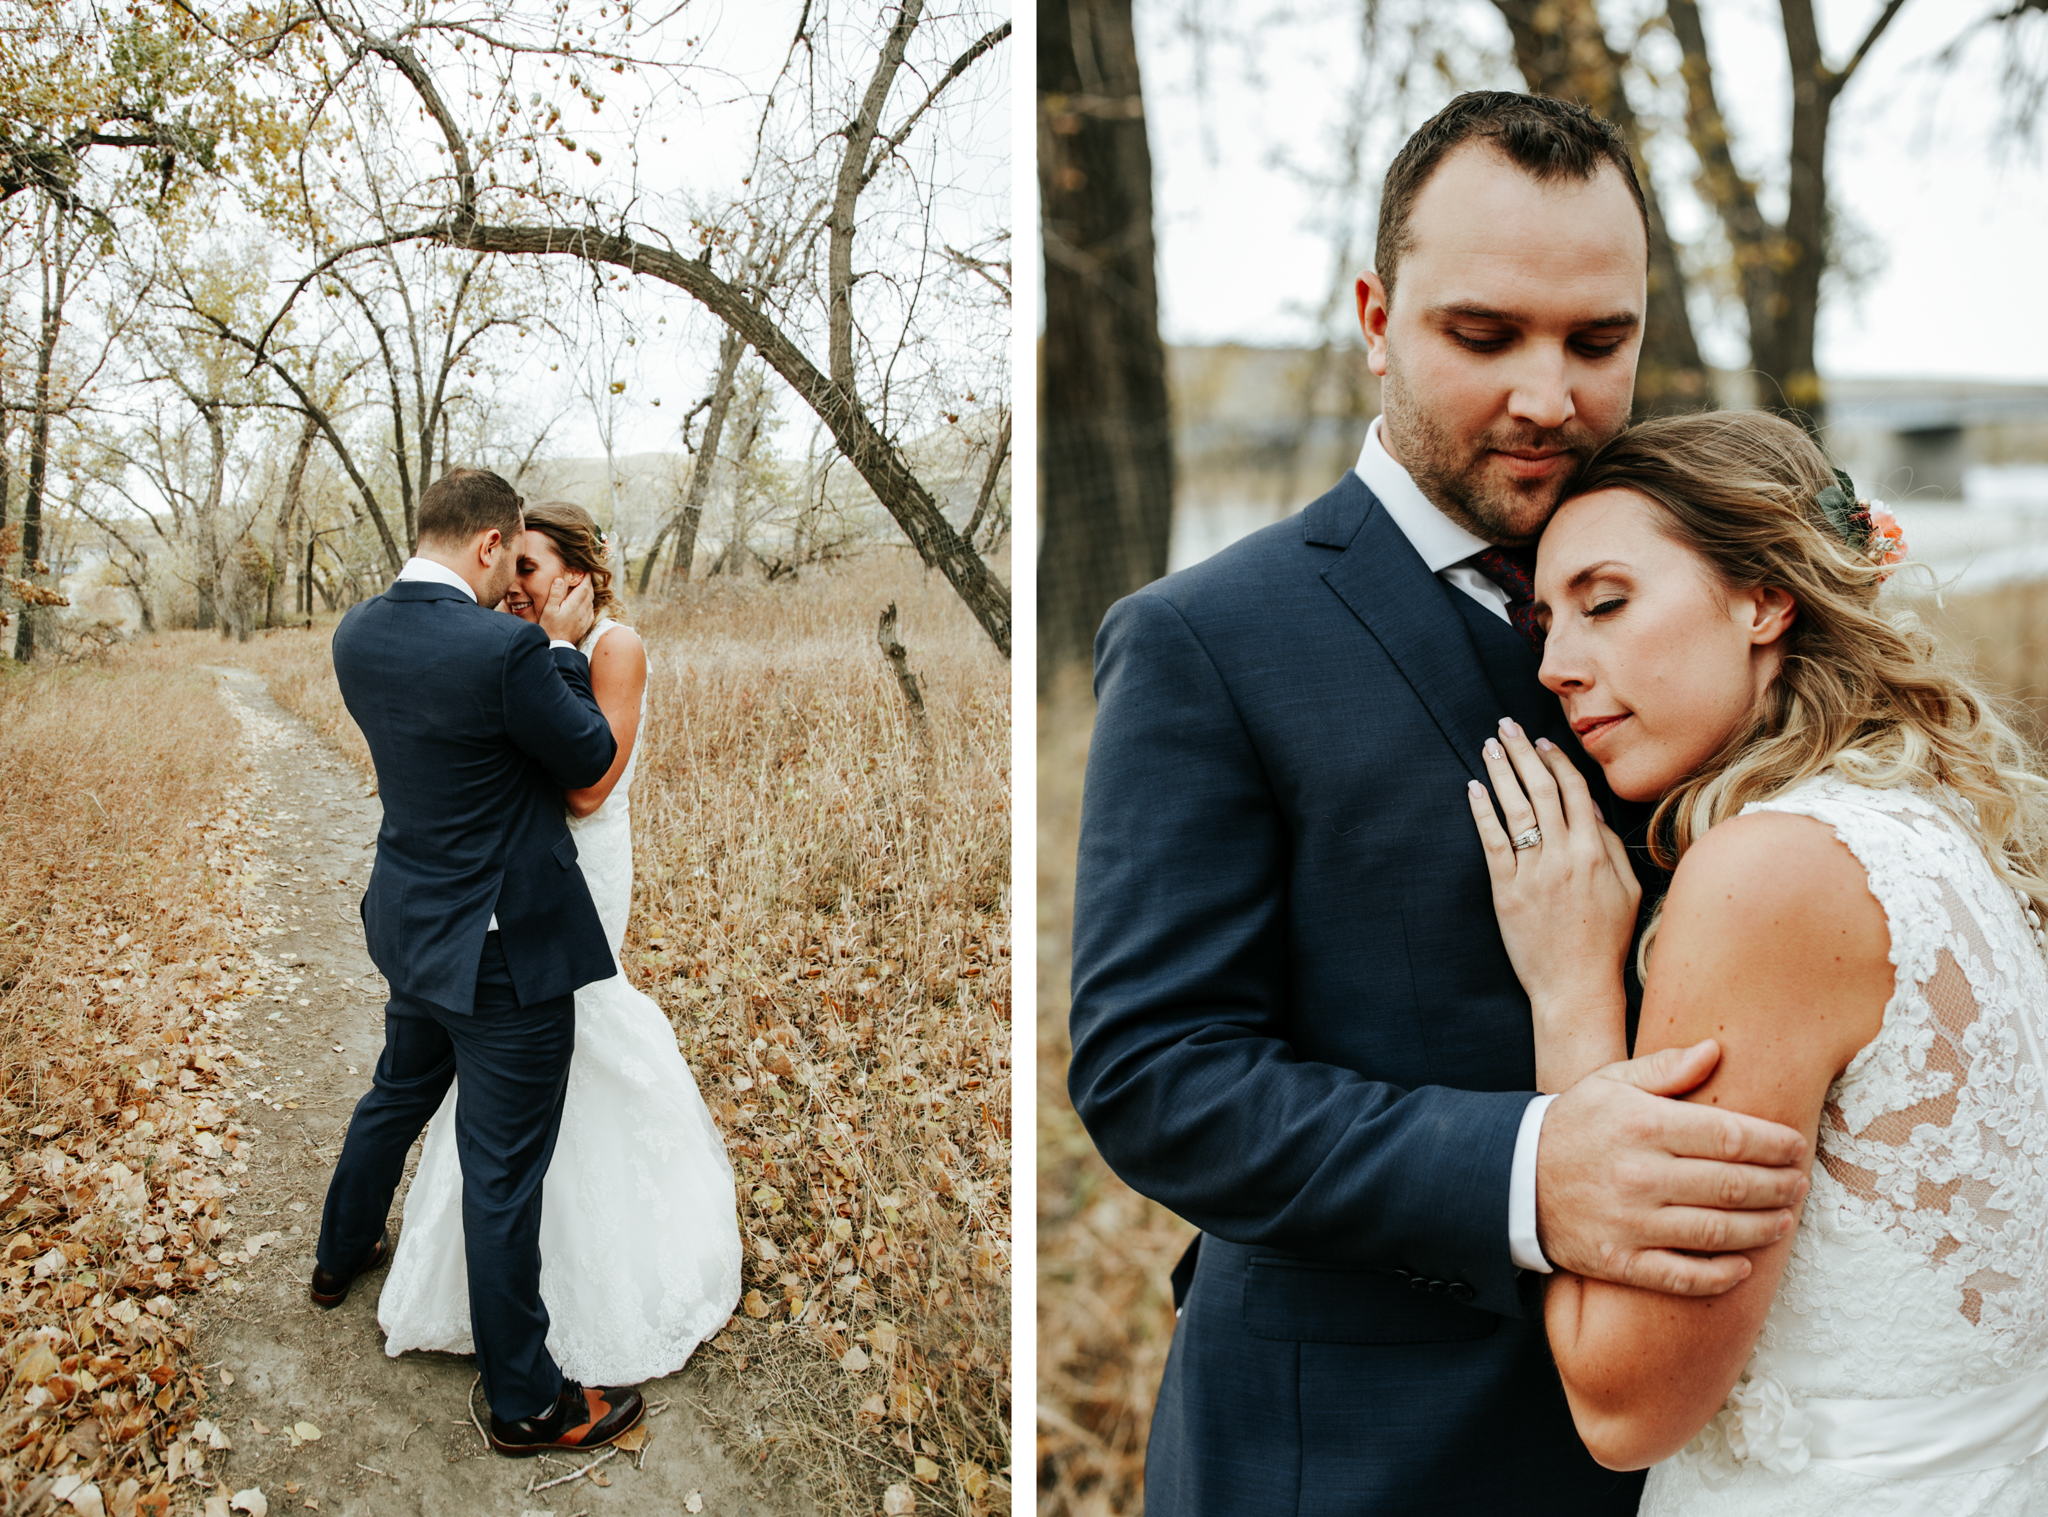 lethbridge-photographer-love-and-be-loved-photography-designed-to-dwell-wedding-katie-kelly-photo-image-picture-211.jpg